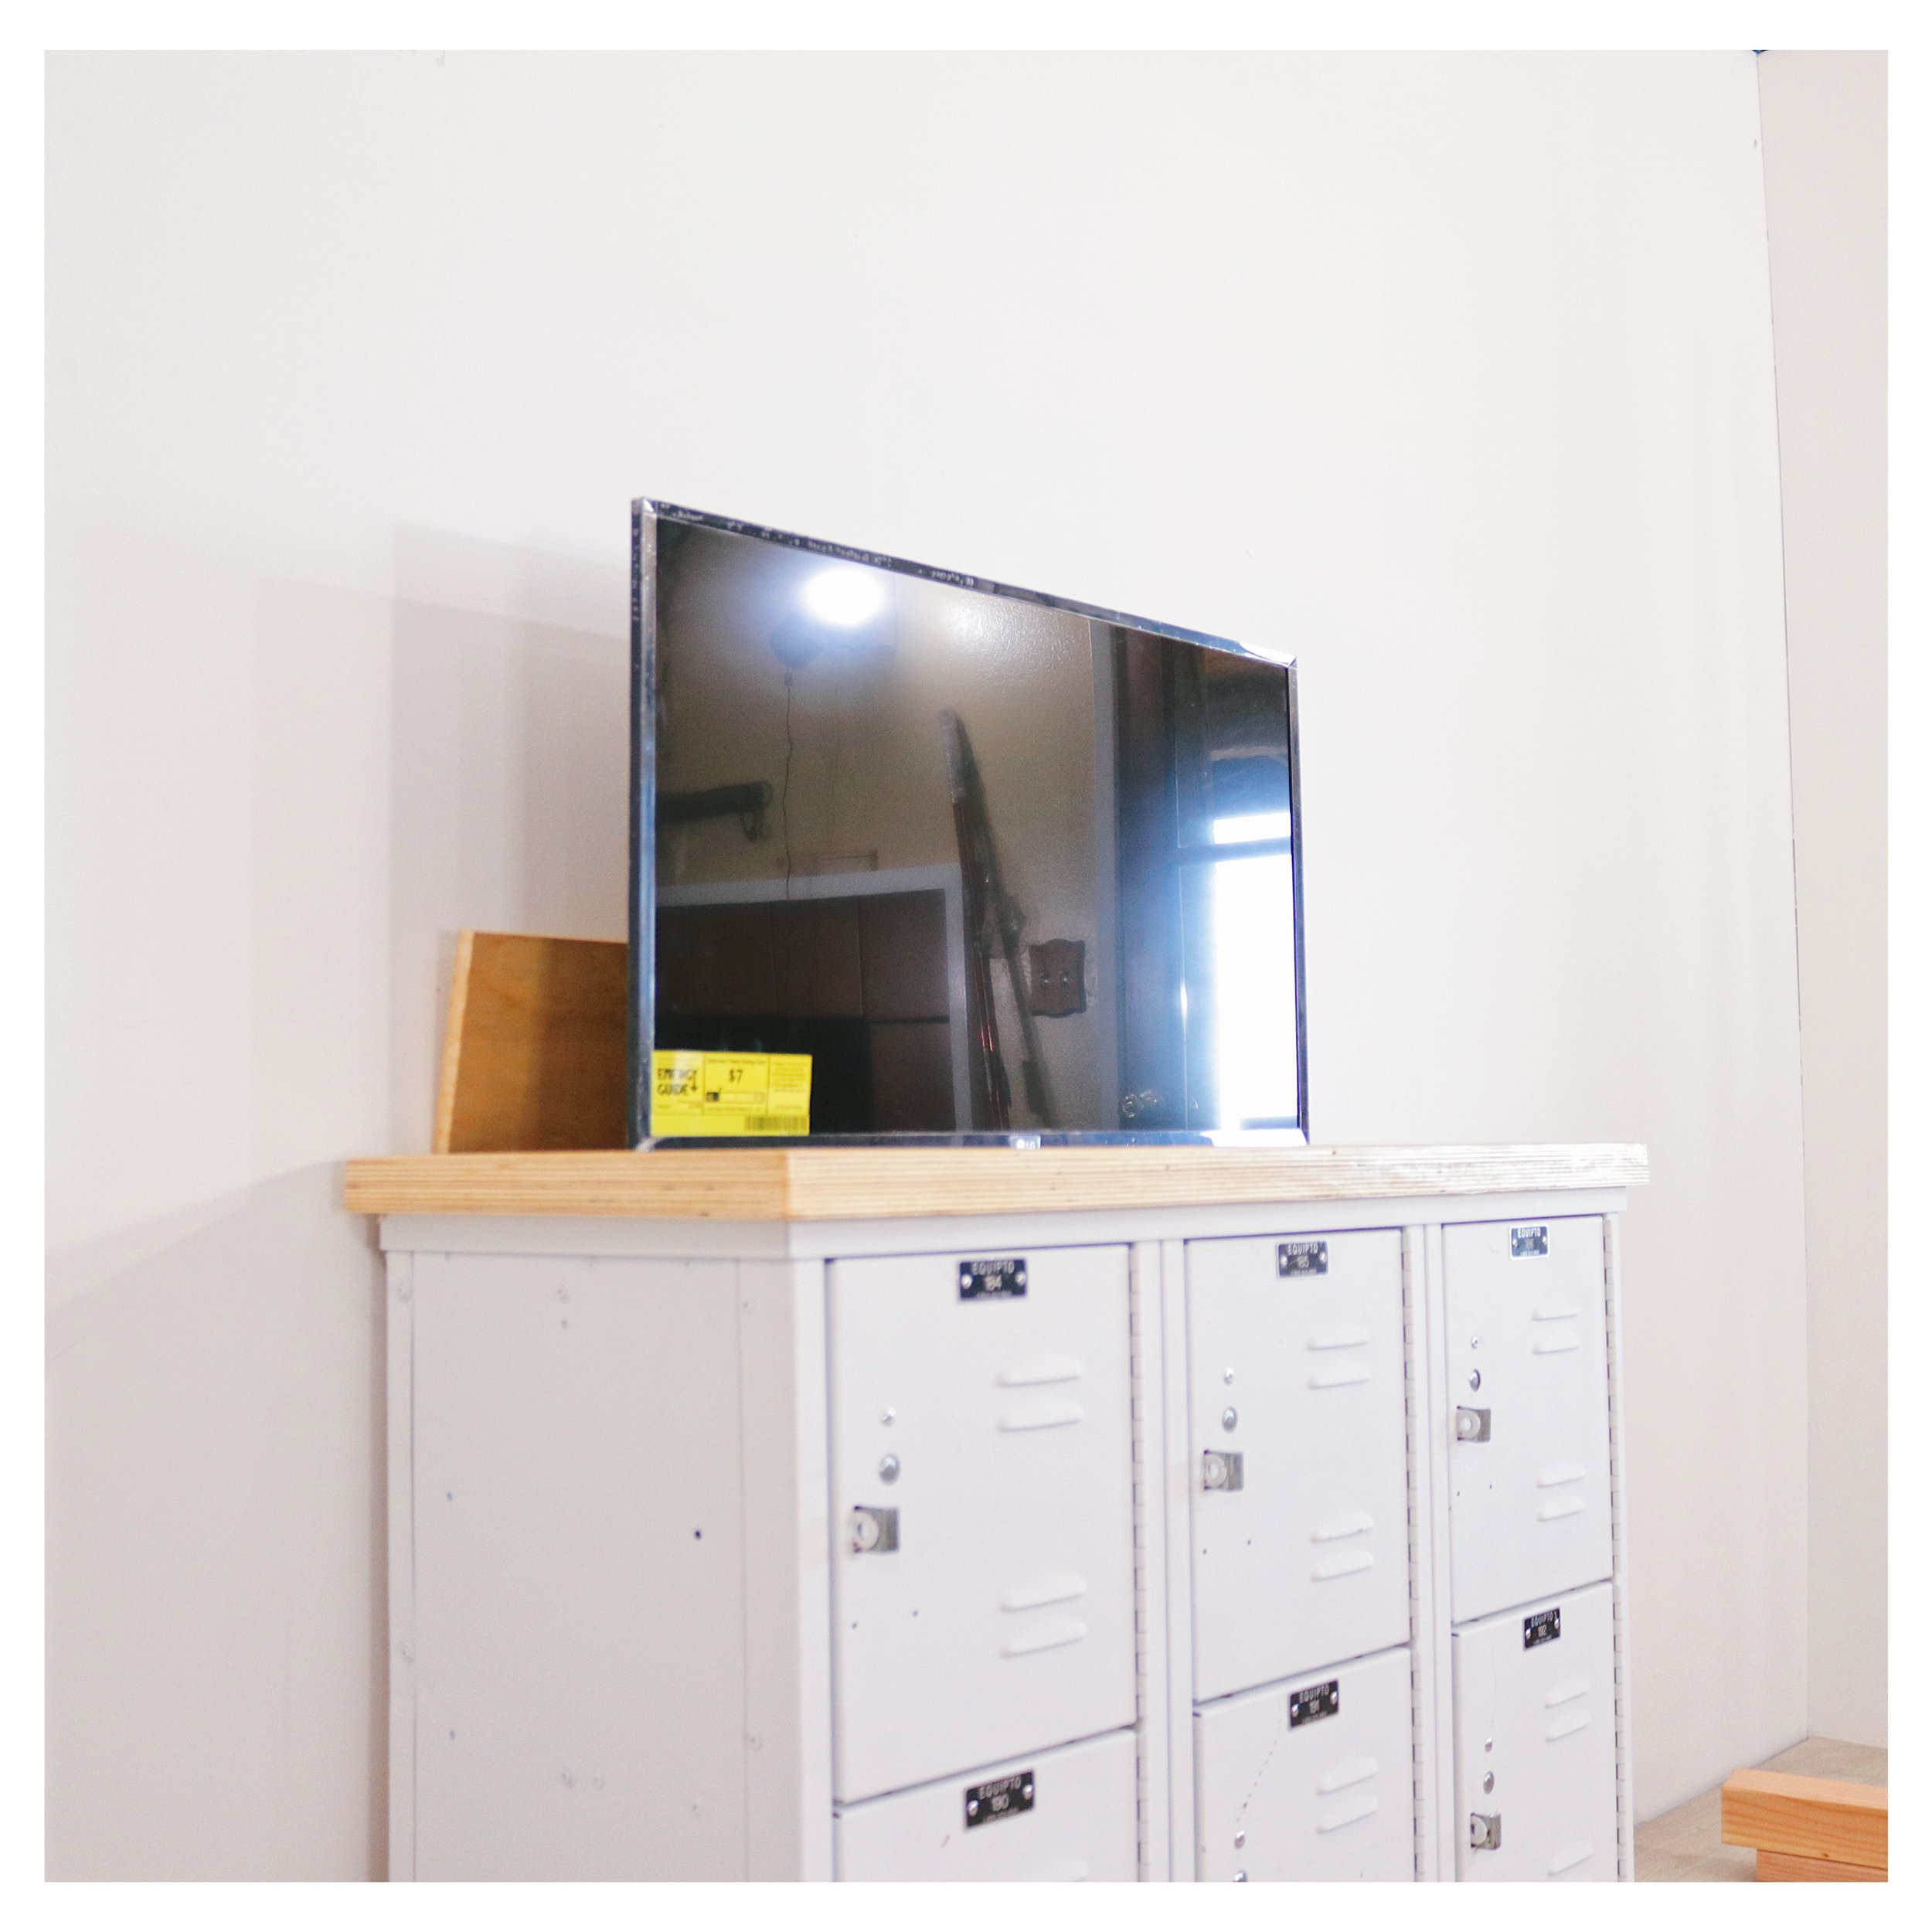 Vintage Lockers Turned Into a TV Lift, Media Console. by: Mike Montgomery | Modern Builds